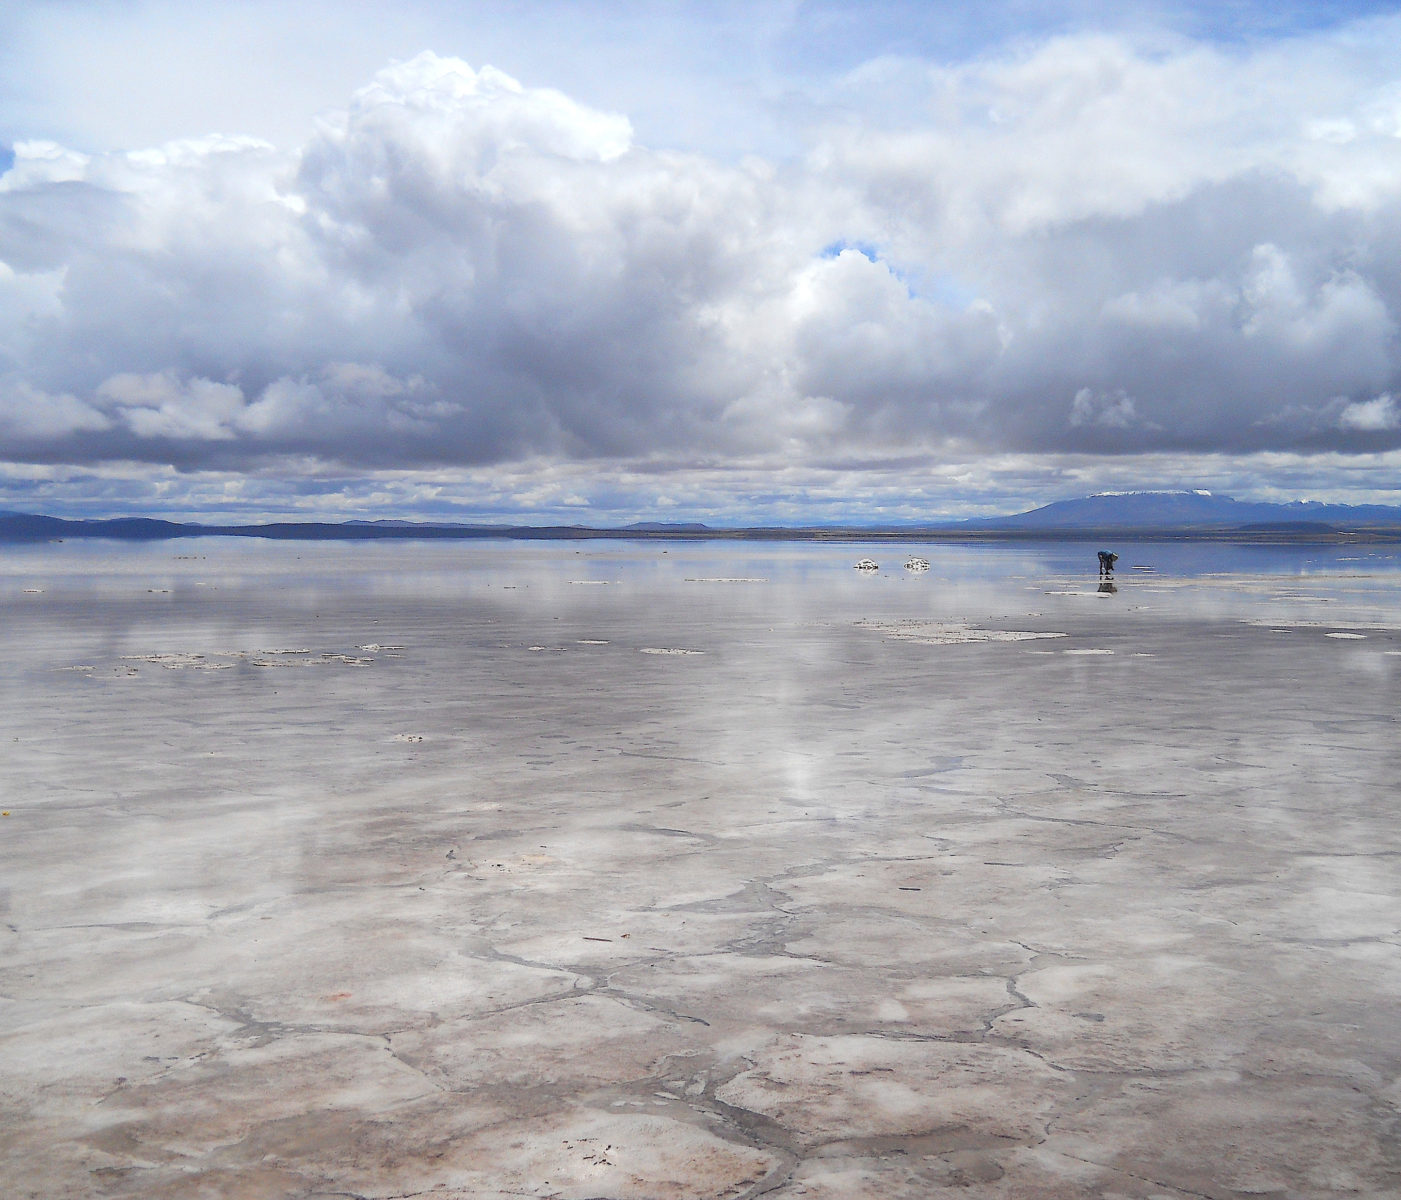 Lithium Prices Are Rebounding and Water Worries May Push Them Even Higher